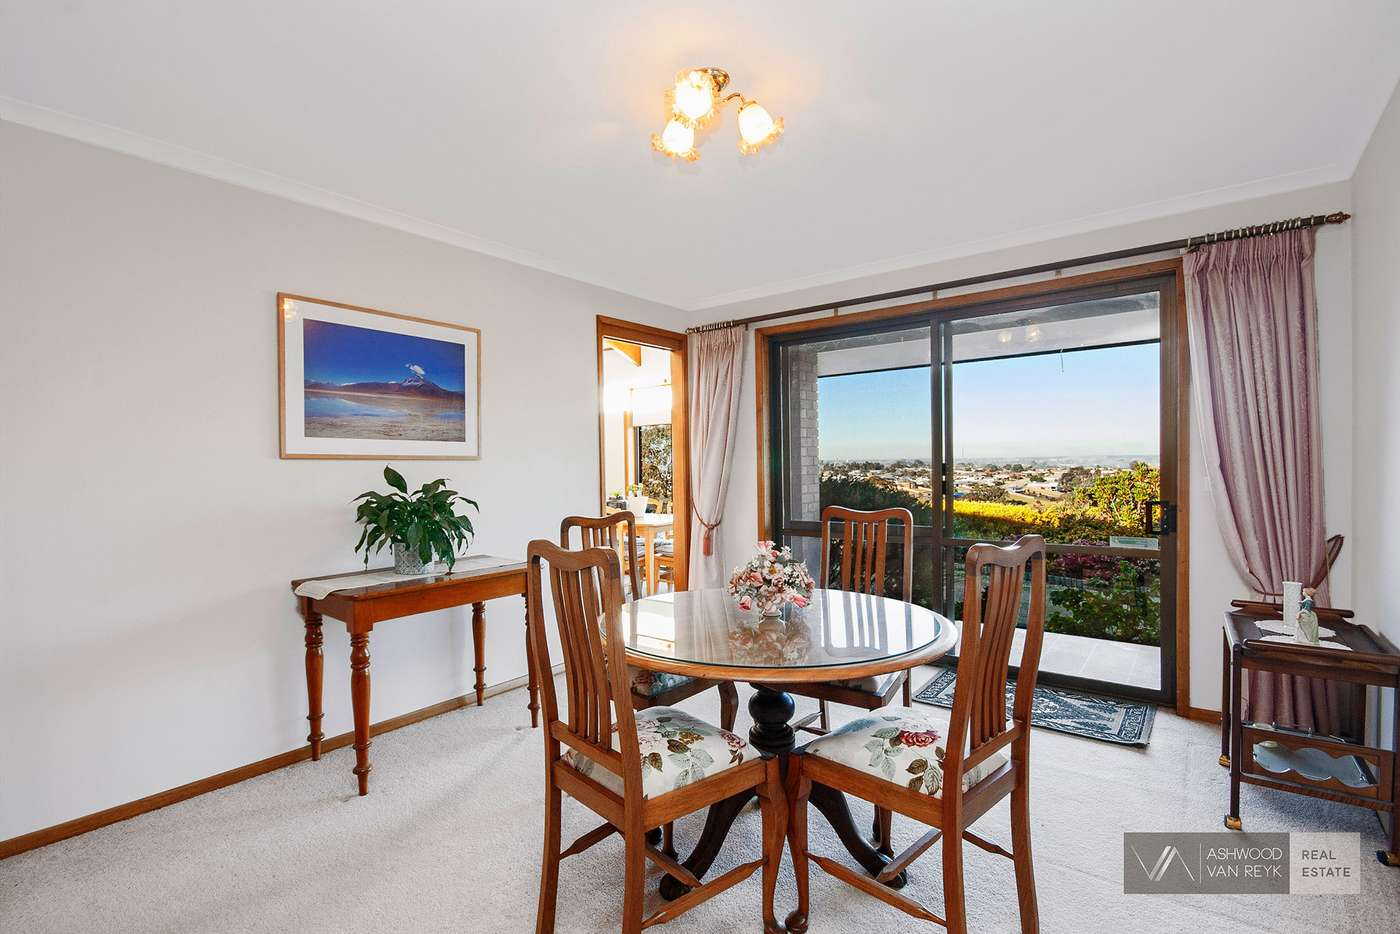 Sixth view of Homely house listing, 3 Isabelle Dr, Wy Yung VIC 3875